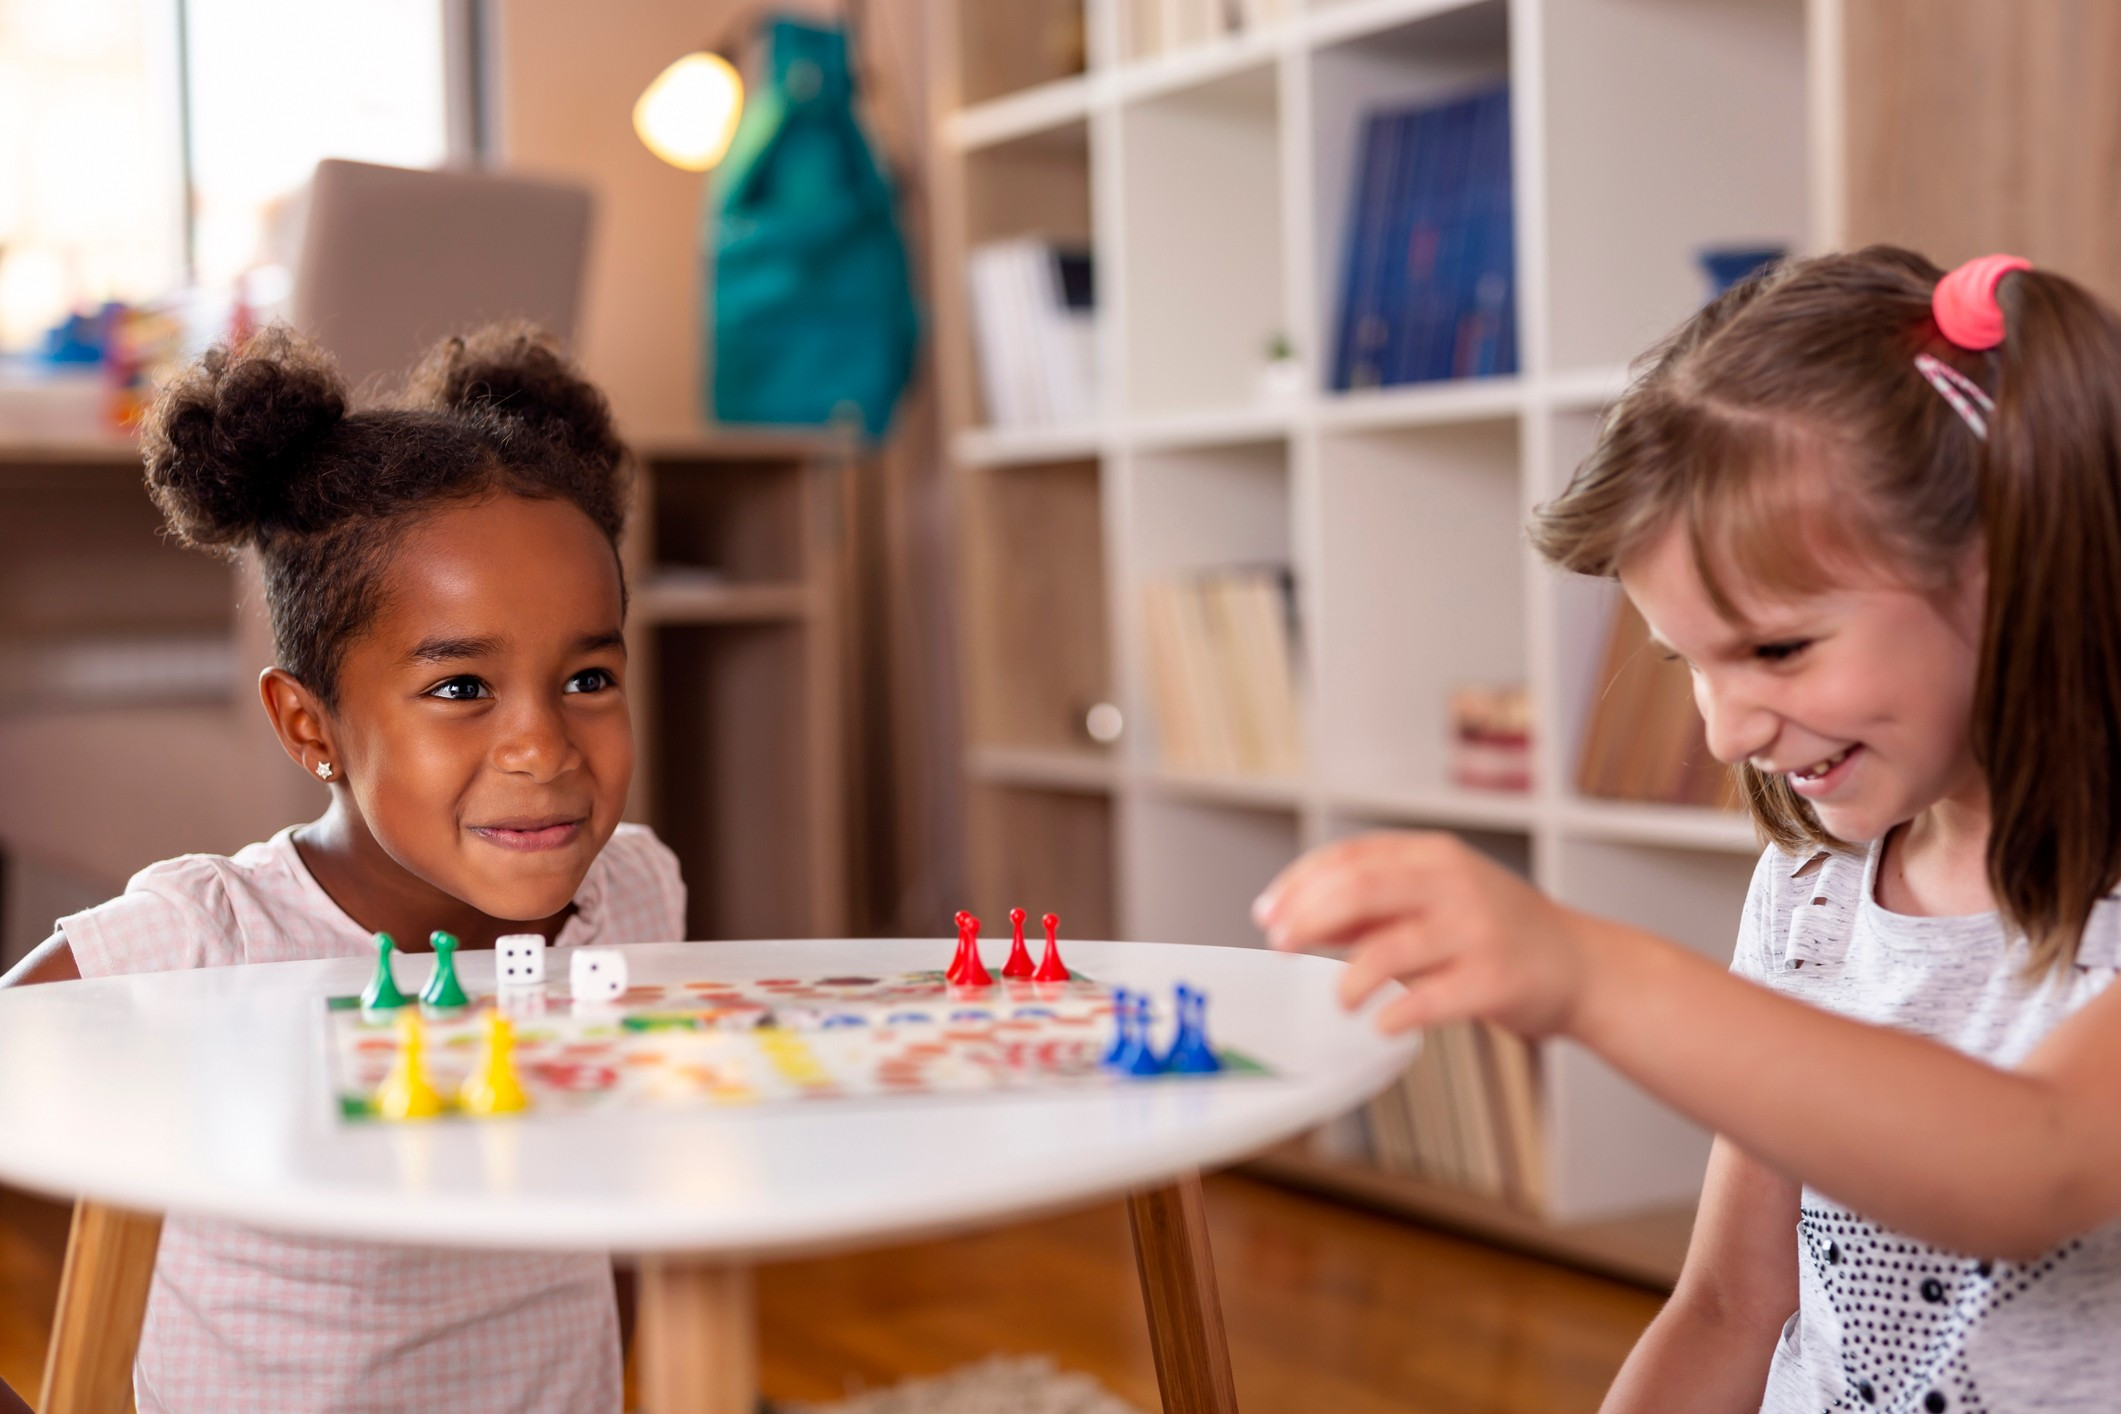 Two young girls playing a board game at home.